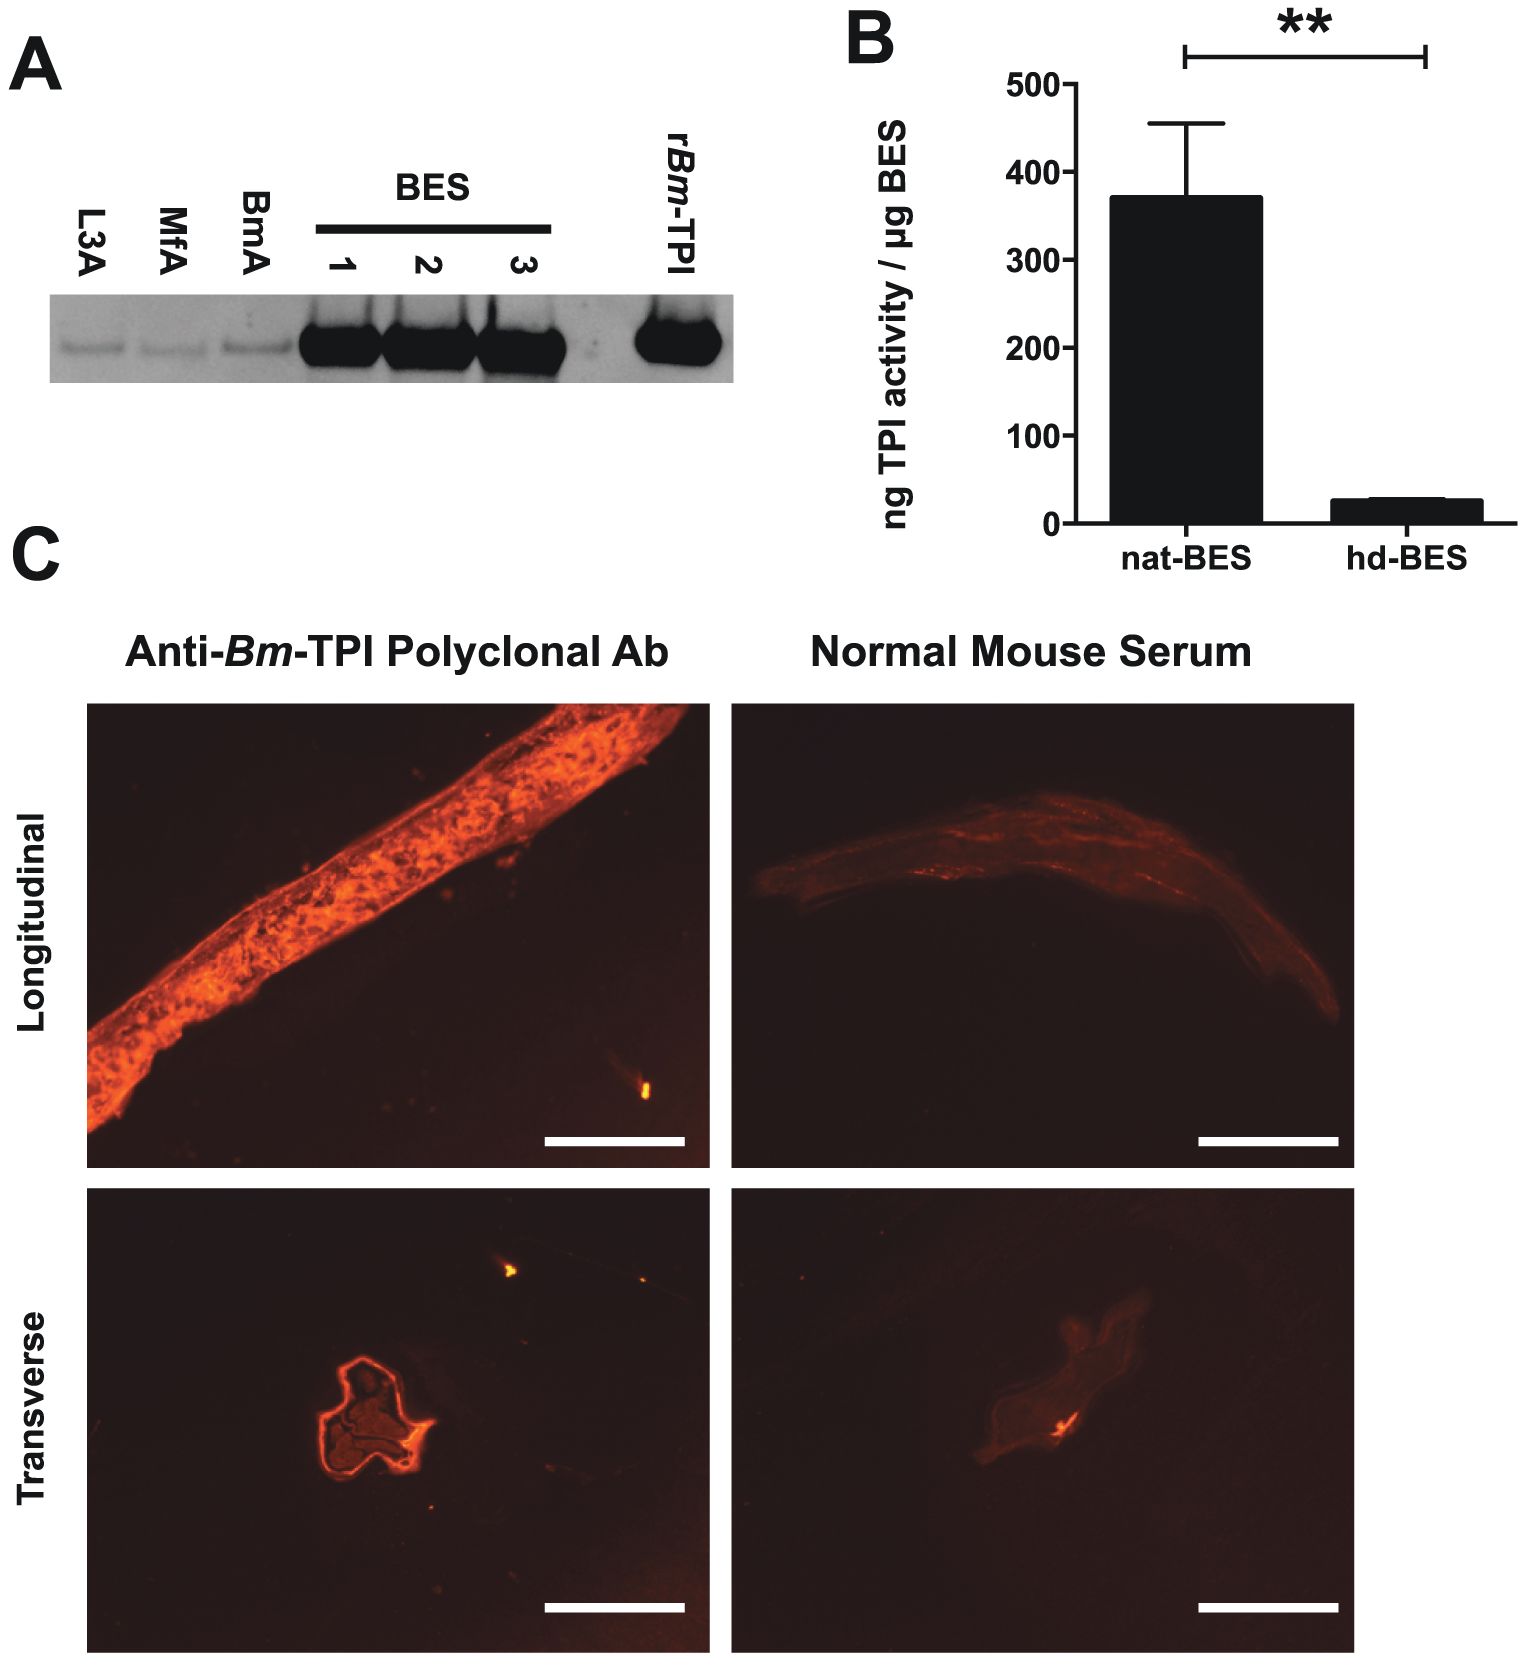 Adult worms preferentially secrete enzymatically active <i>Bm</i>-TPI.